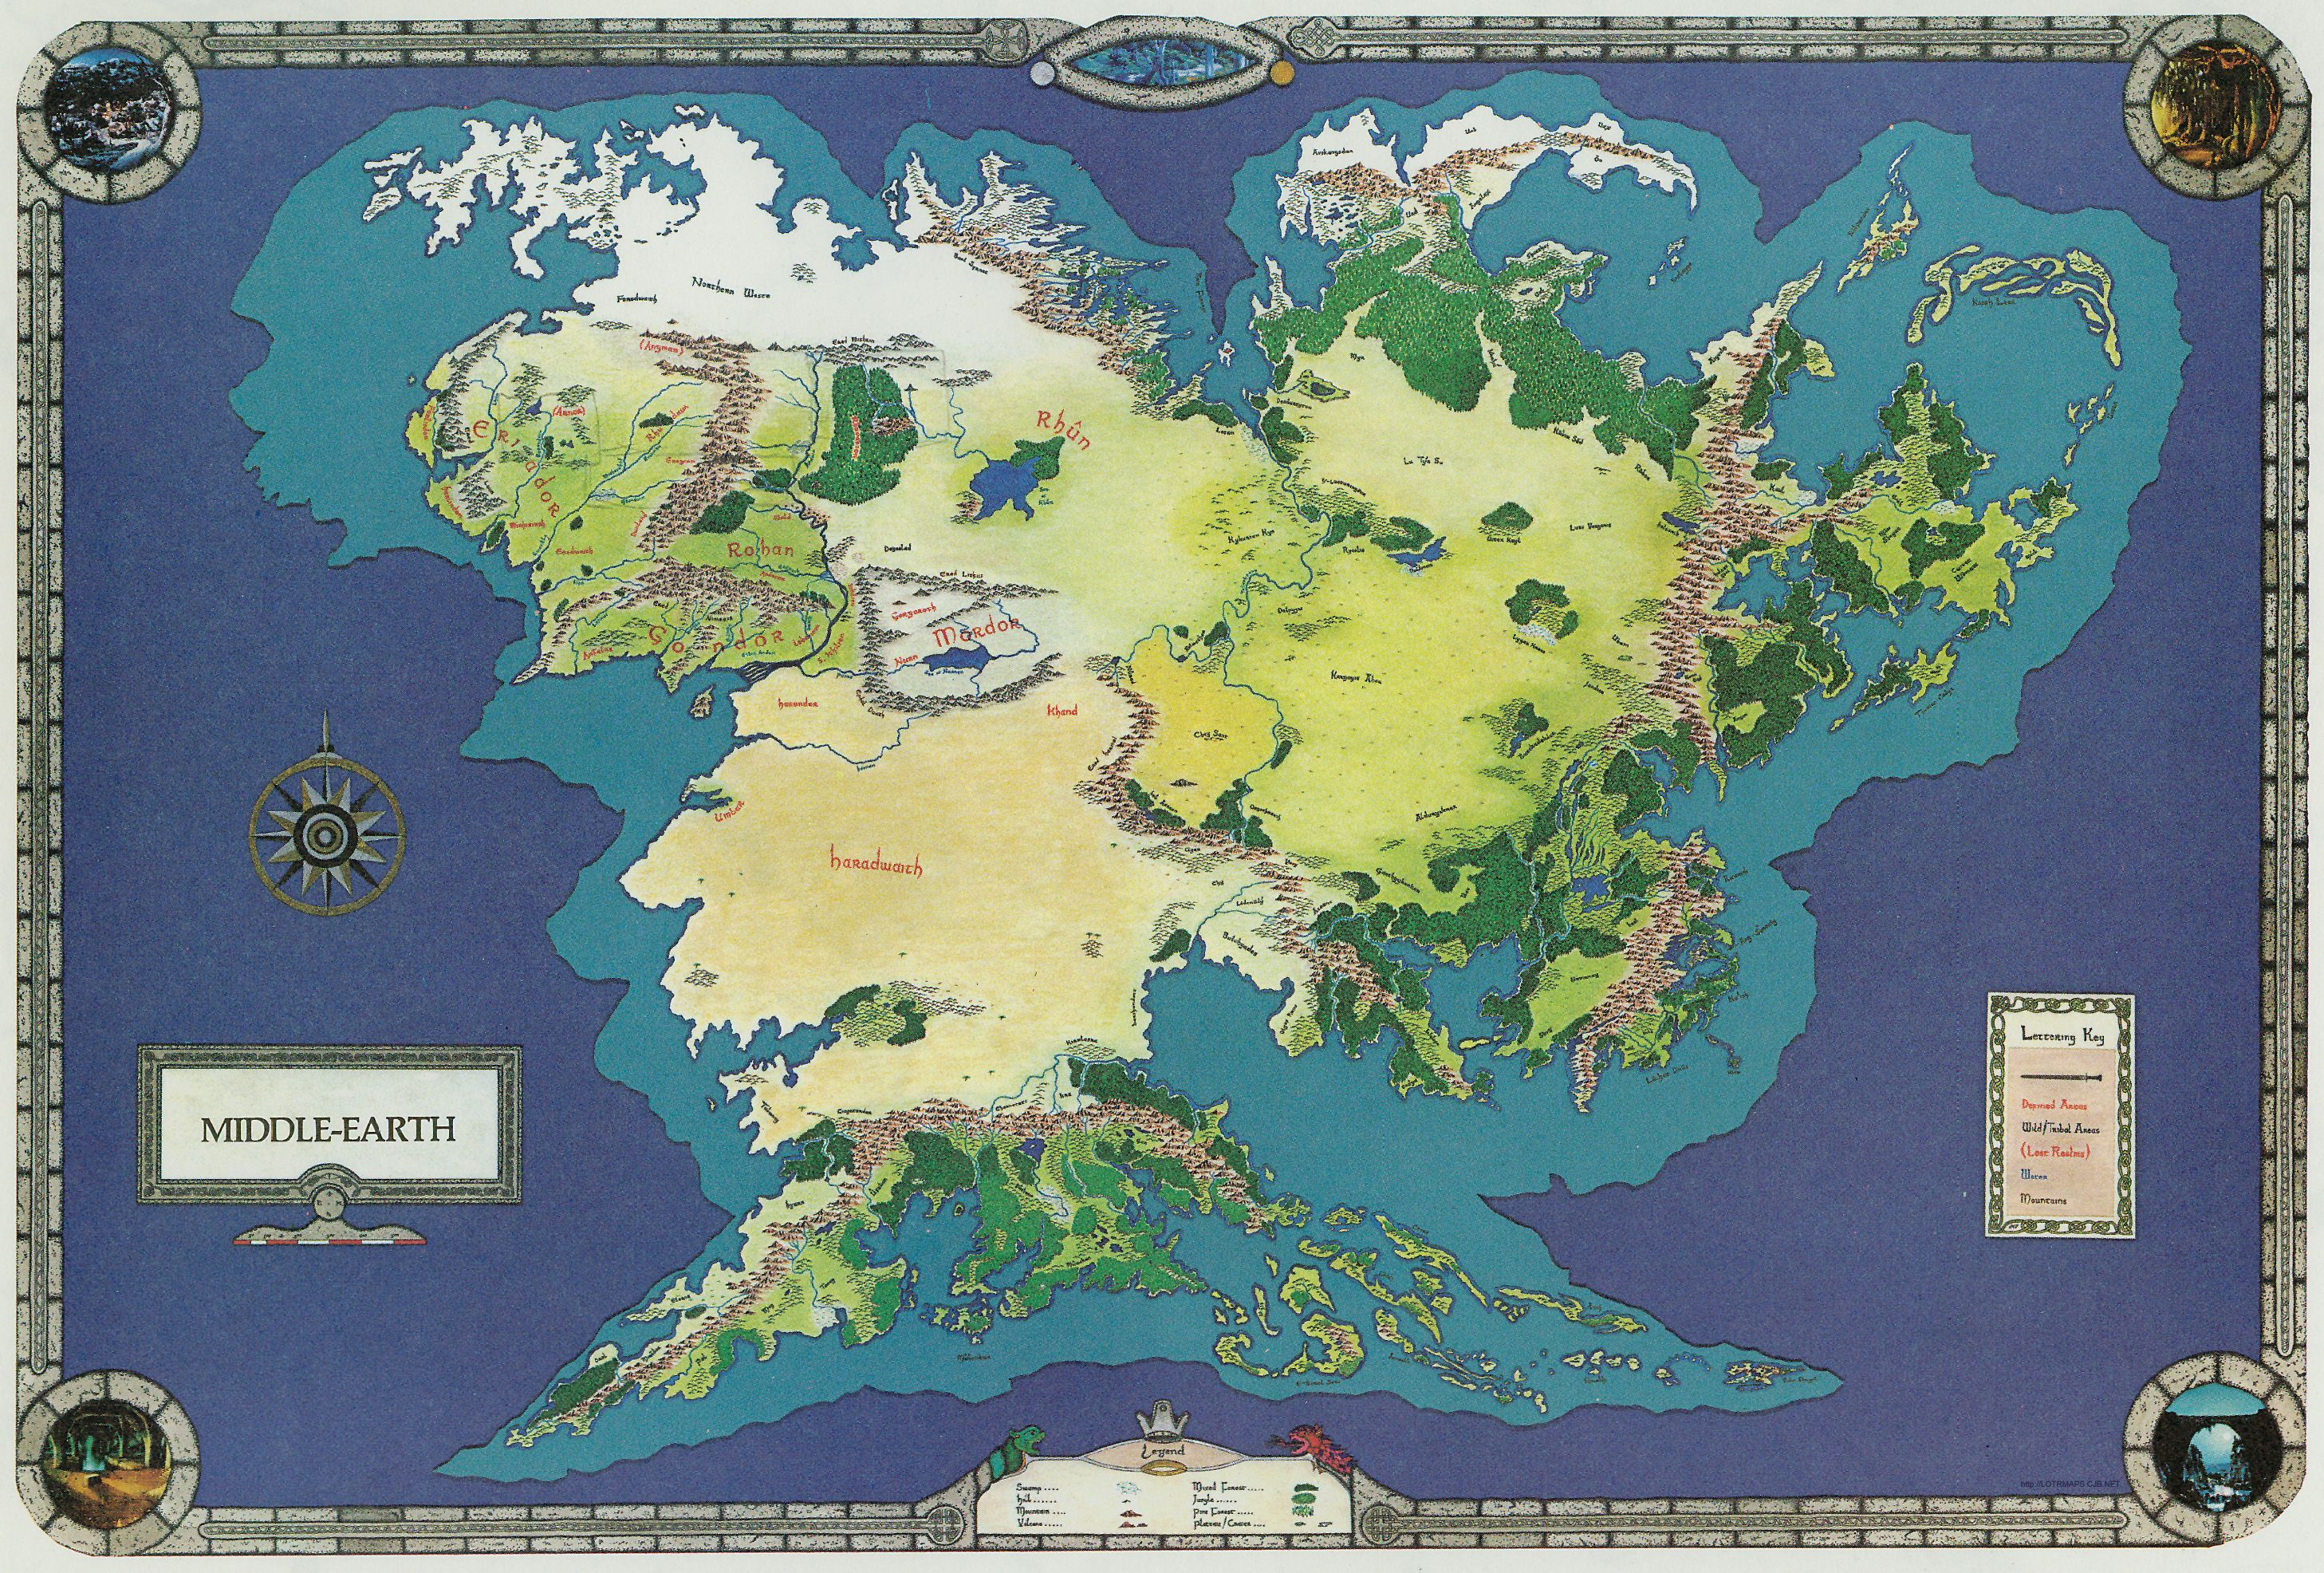 Pin by Ekete Doremi on Maps | Middle earth map, Middle earth